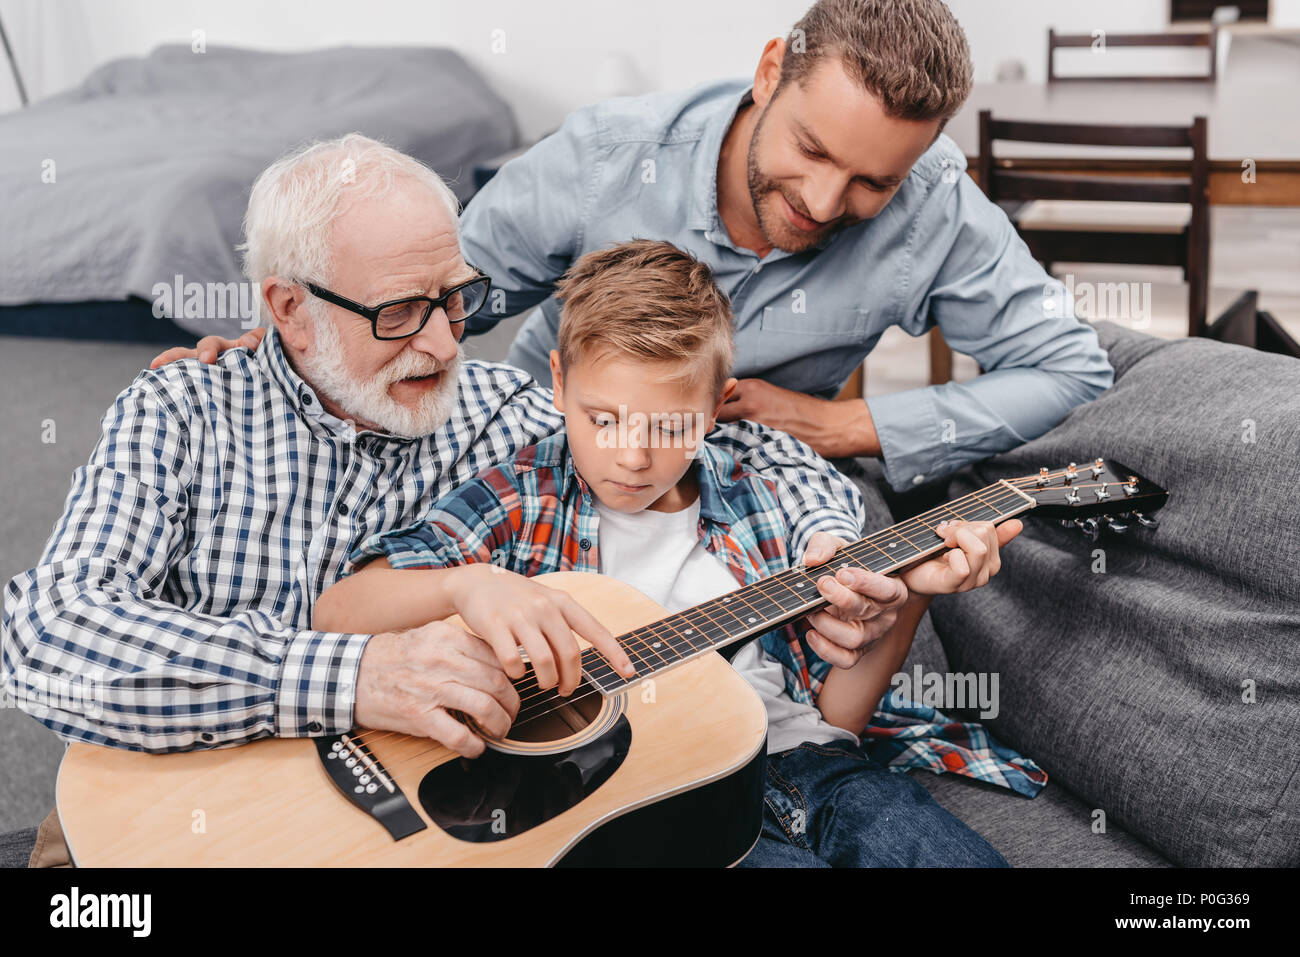 Young boy trying to learn playing guitar while his father and grandpa are helping him - Stock Image